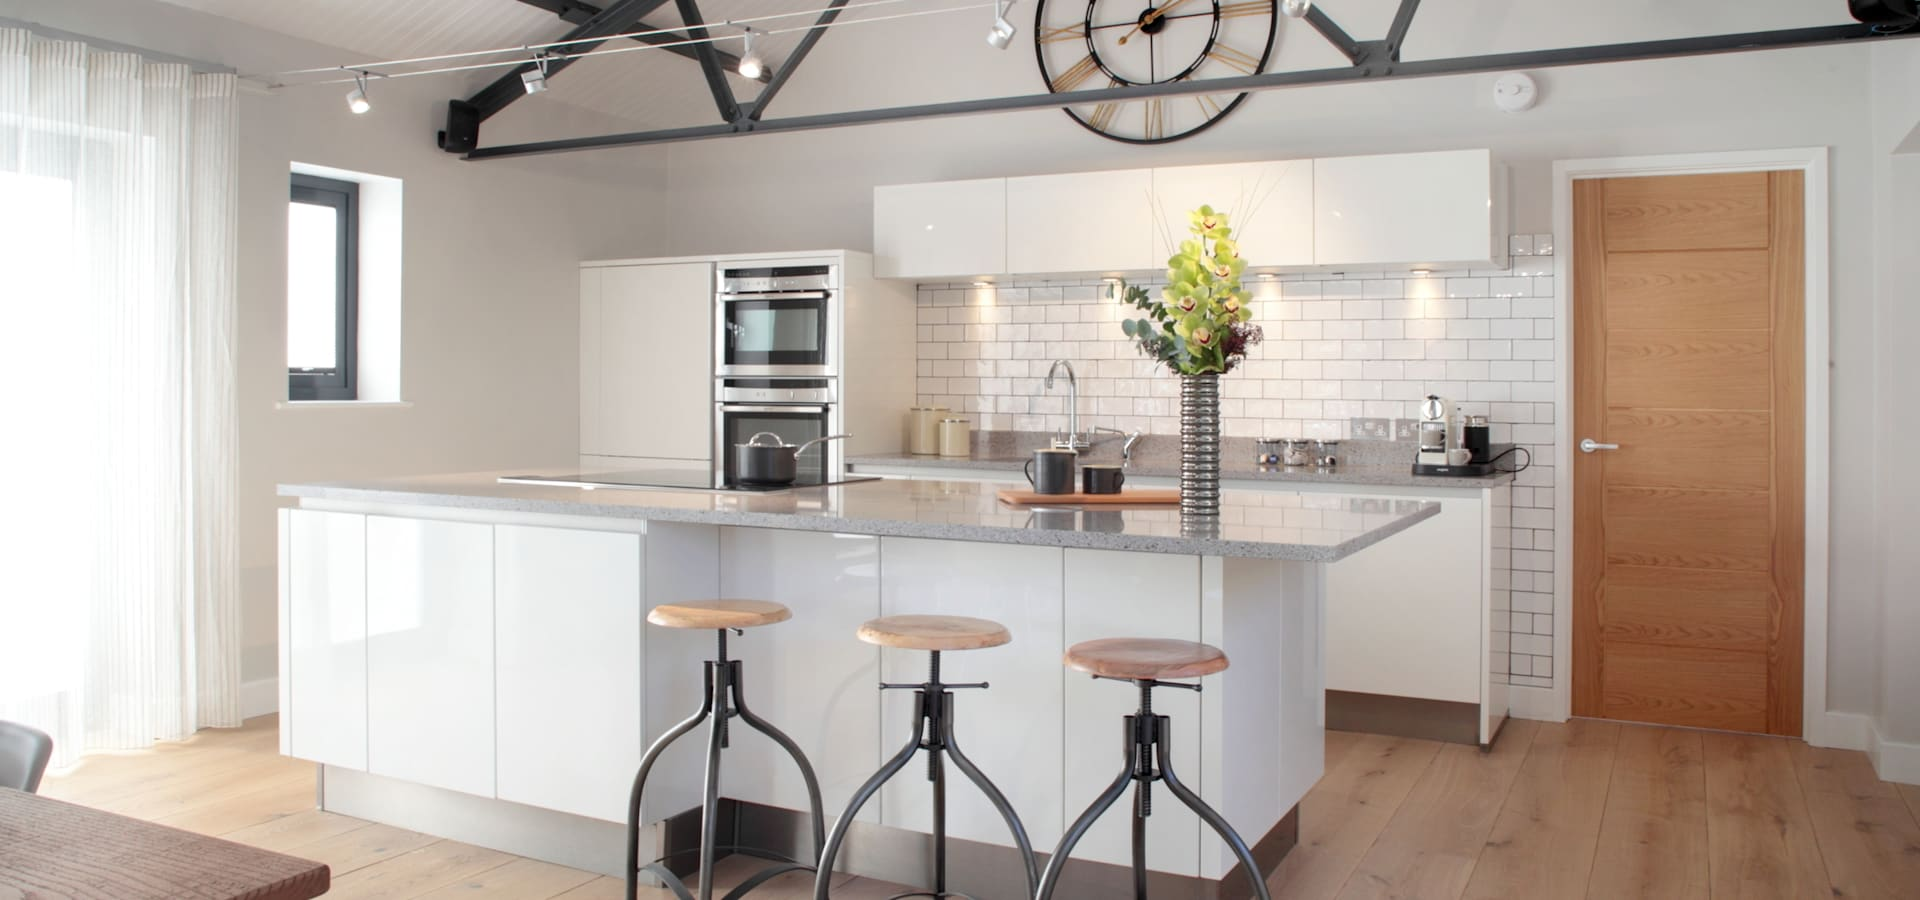 in-toto kitchens design studio marlow: kitchen planners in marlow